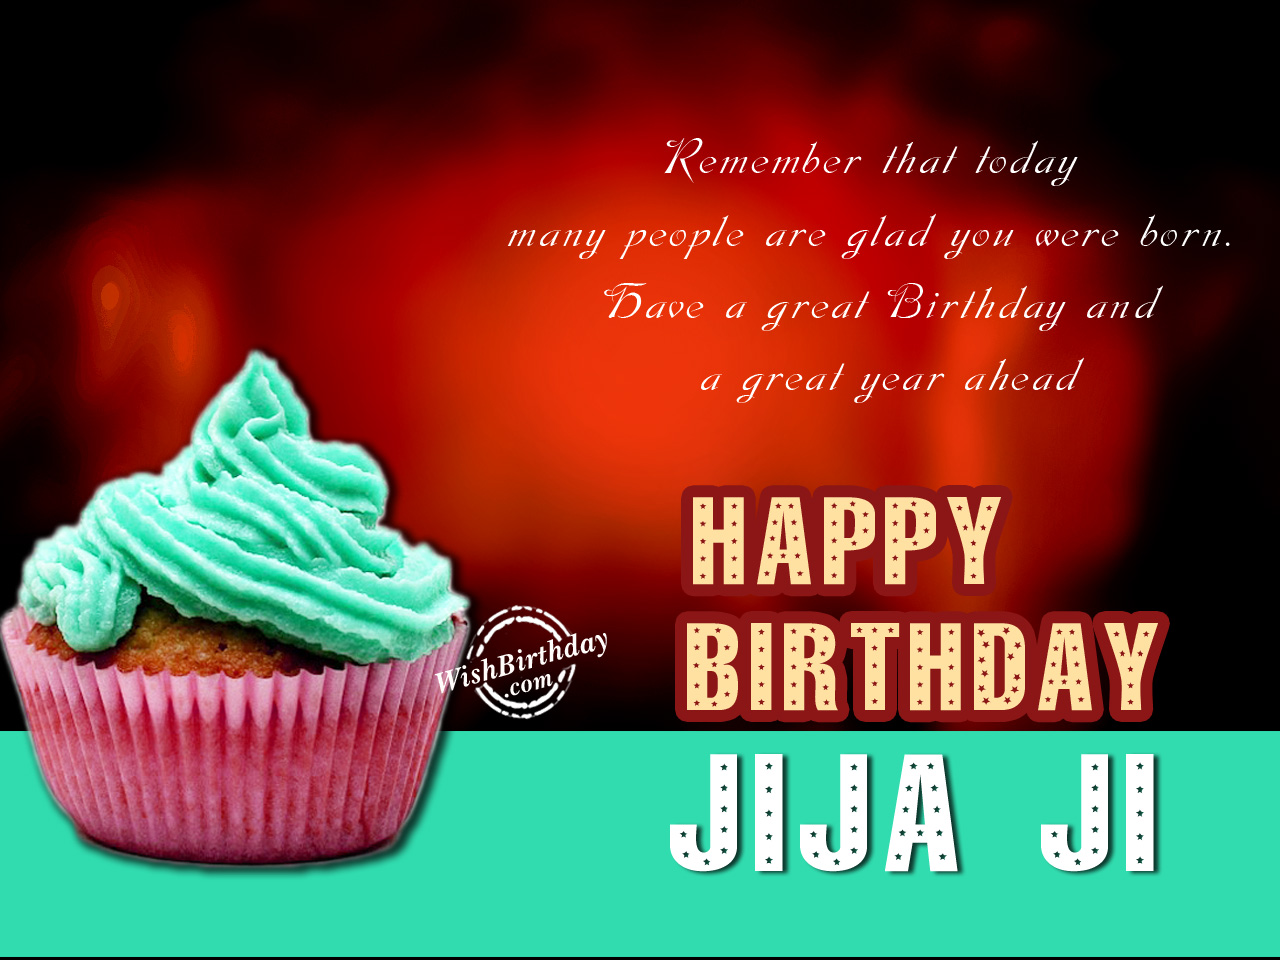 Remember-that-today-many-people-glad-youHappy-Birthday-Jiju.jpg